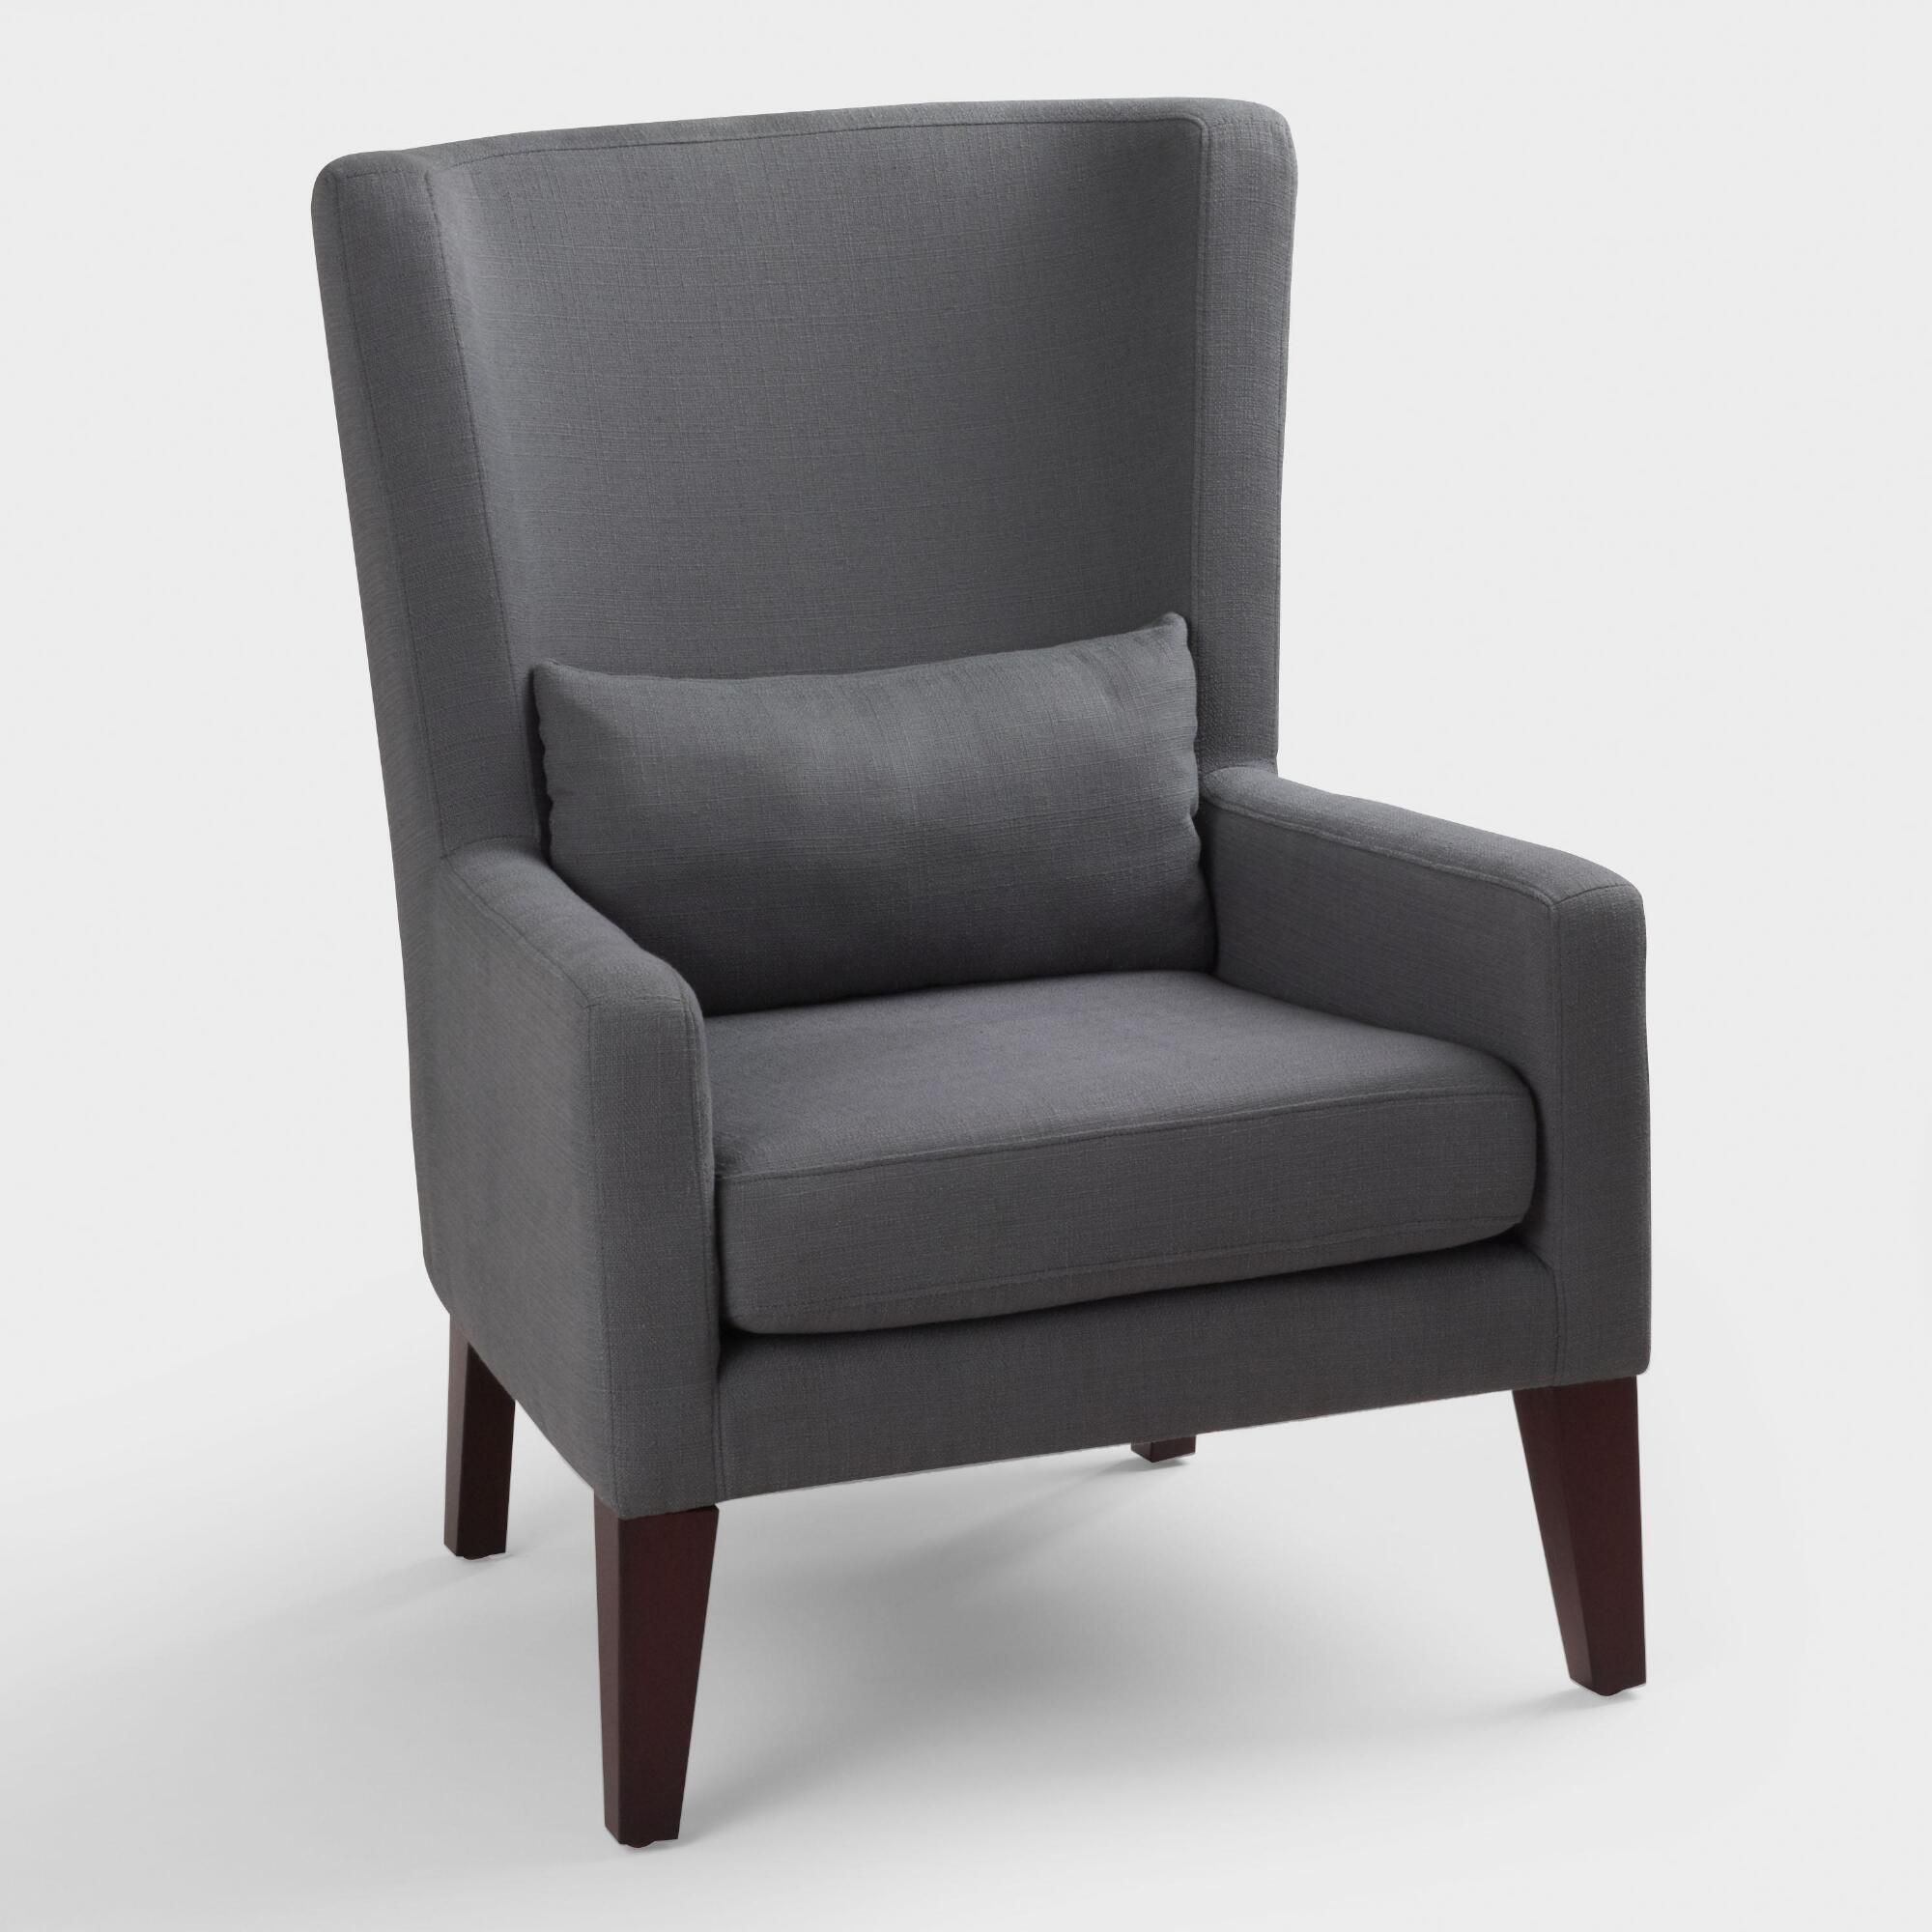 Astounding Dove Gray Triton High Back Chair Fabric By World Market In Home Remodeling Inspirations Genioncuboardxyz